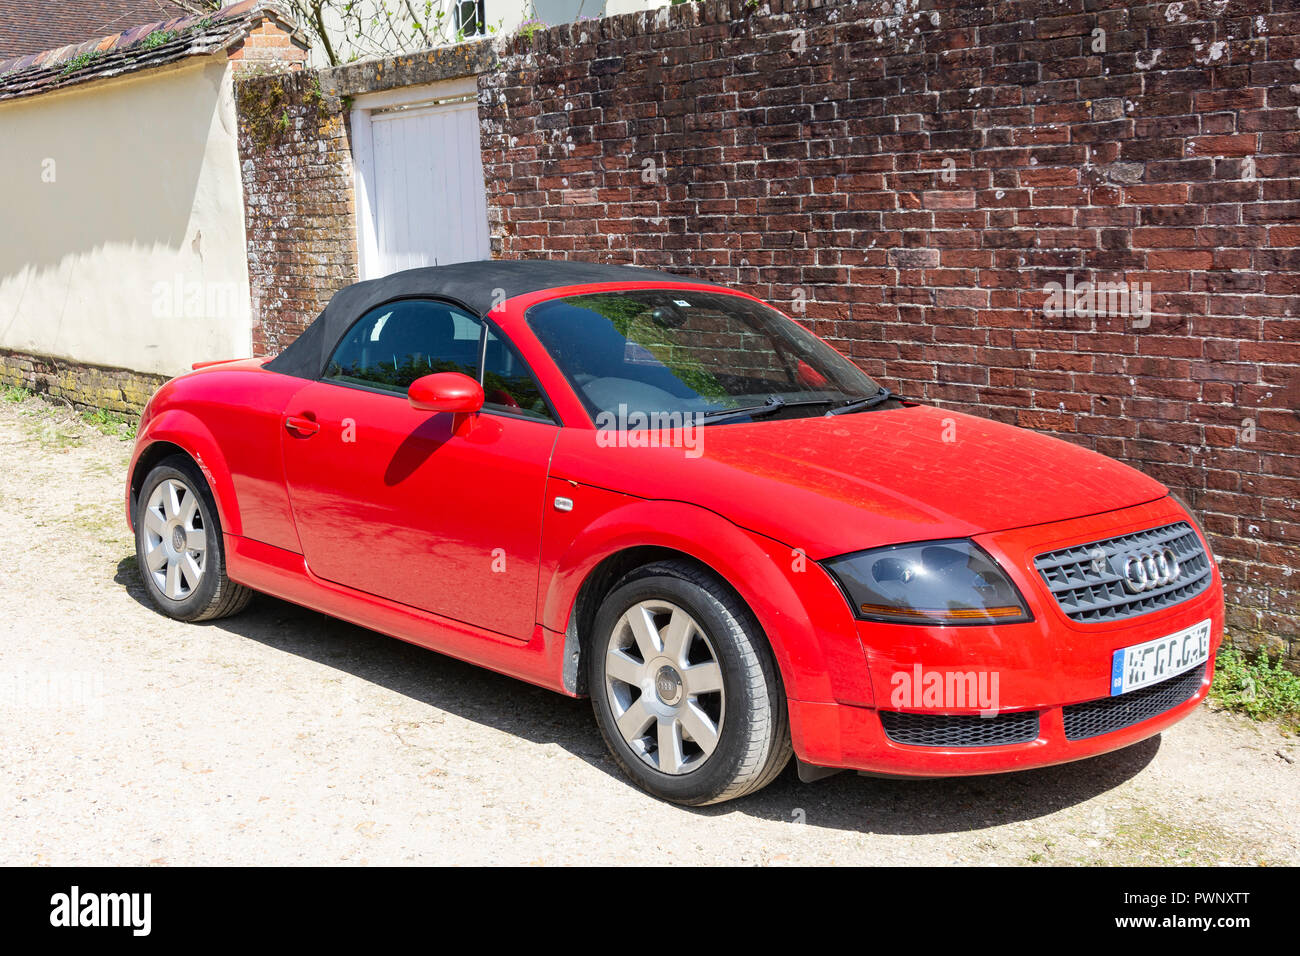 Audi TT convertible sports car, Bere Regis, Dorset, England, United Kingdom - Stock Image